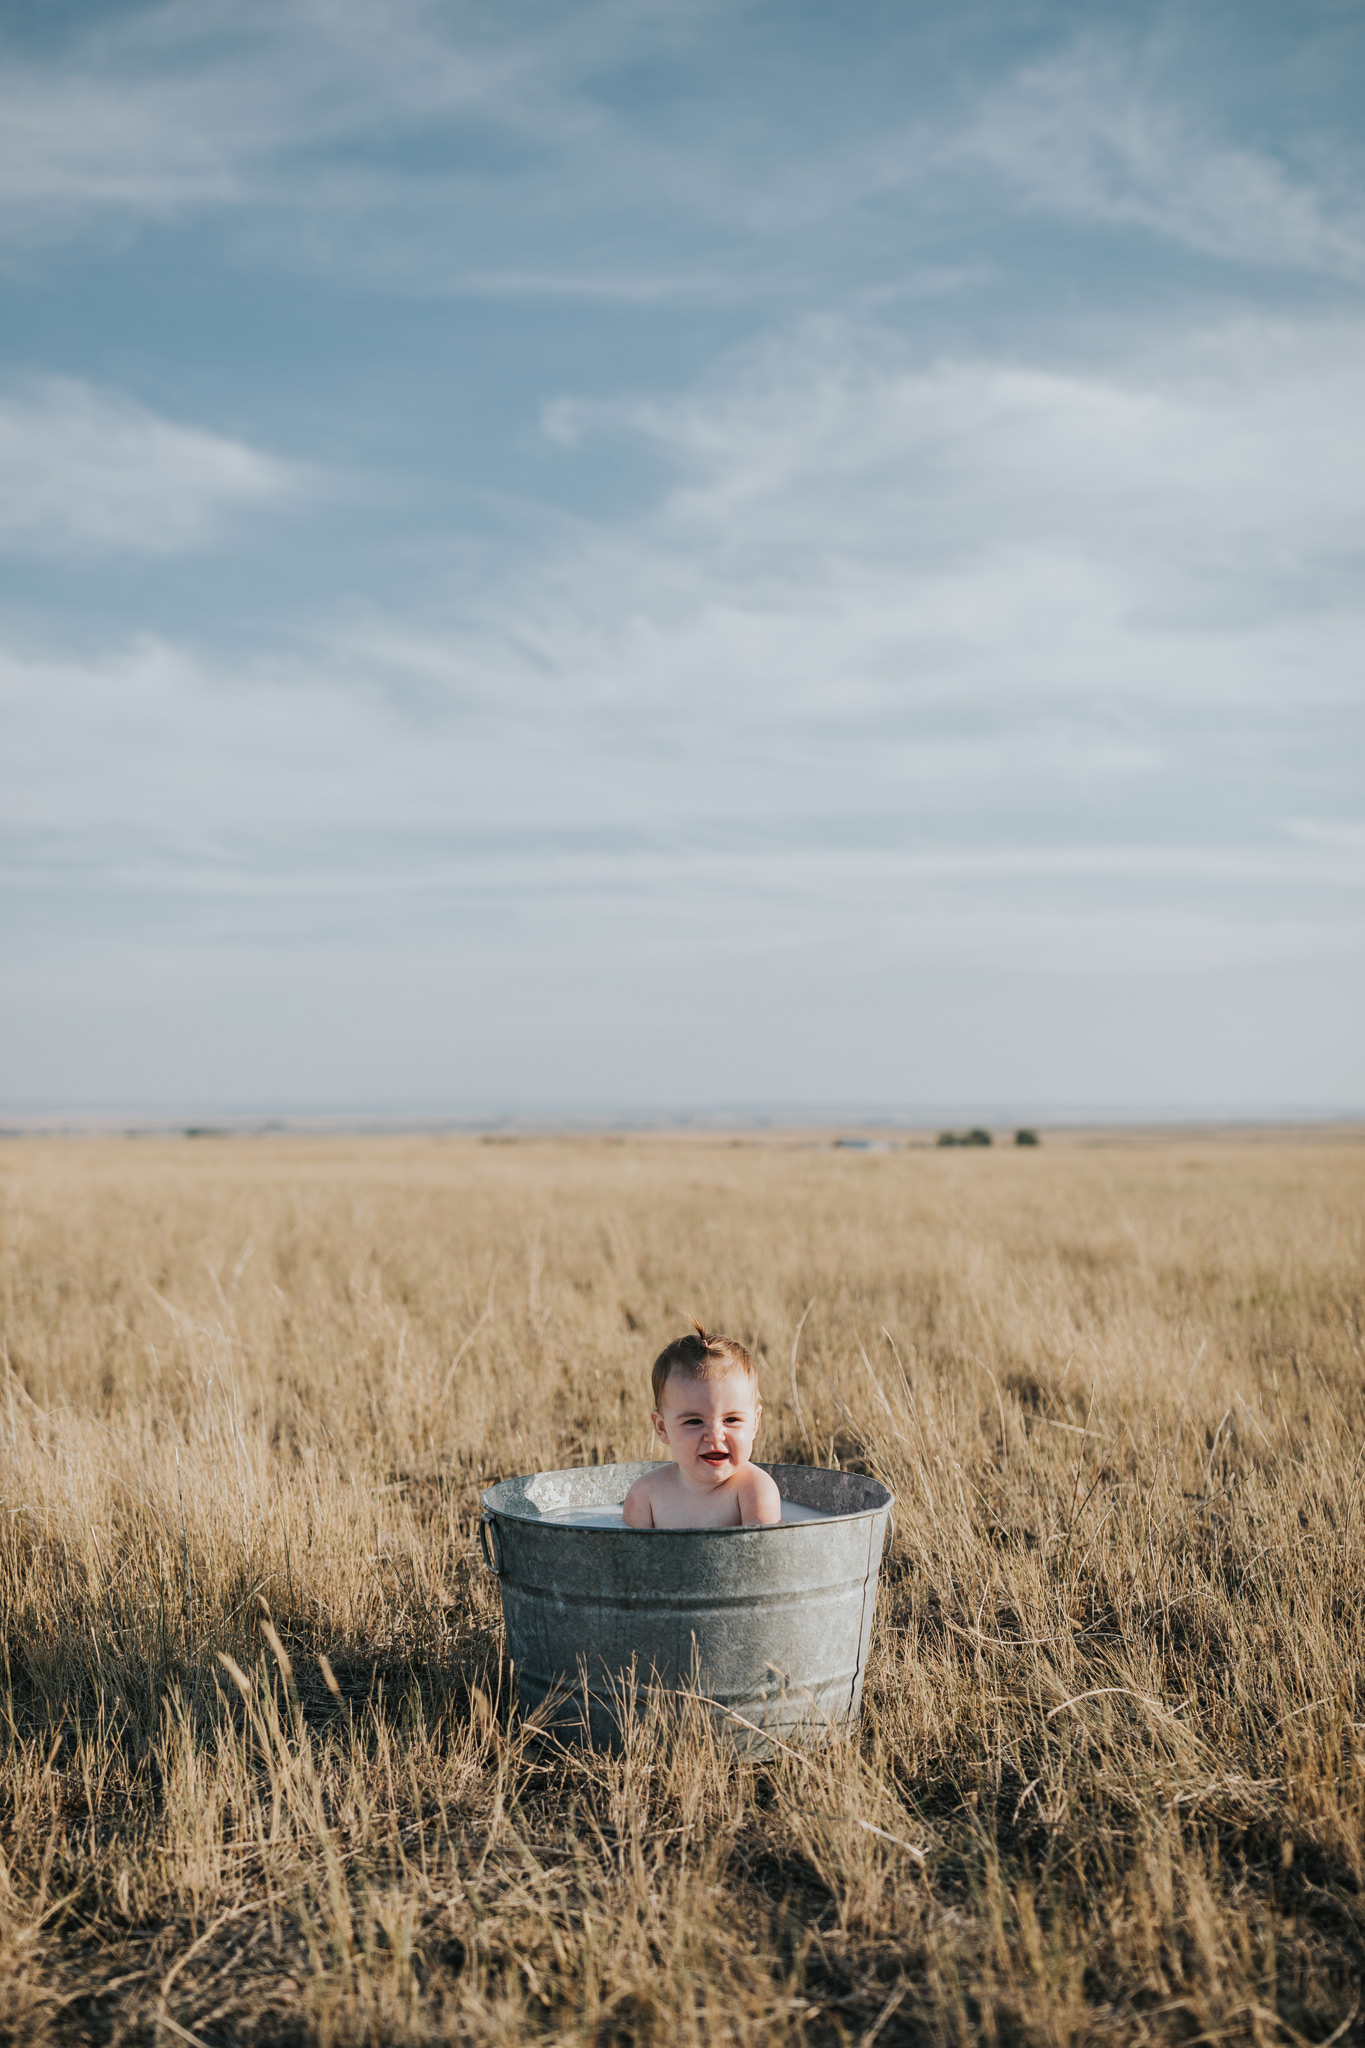 baby sitting in round metal tub milk bath smiling alberta farm